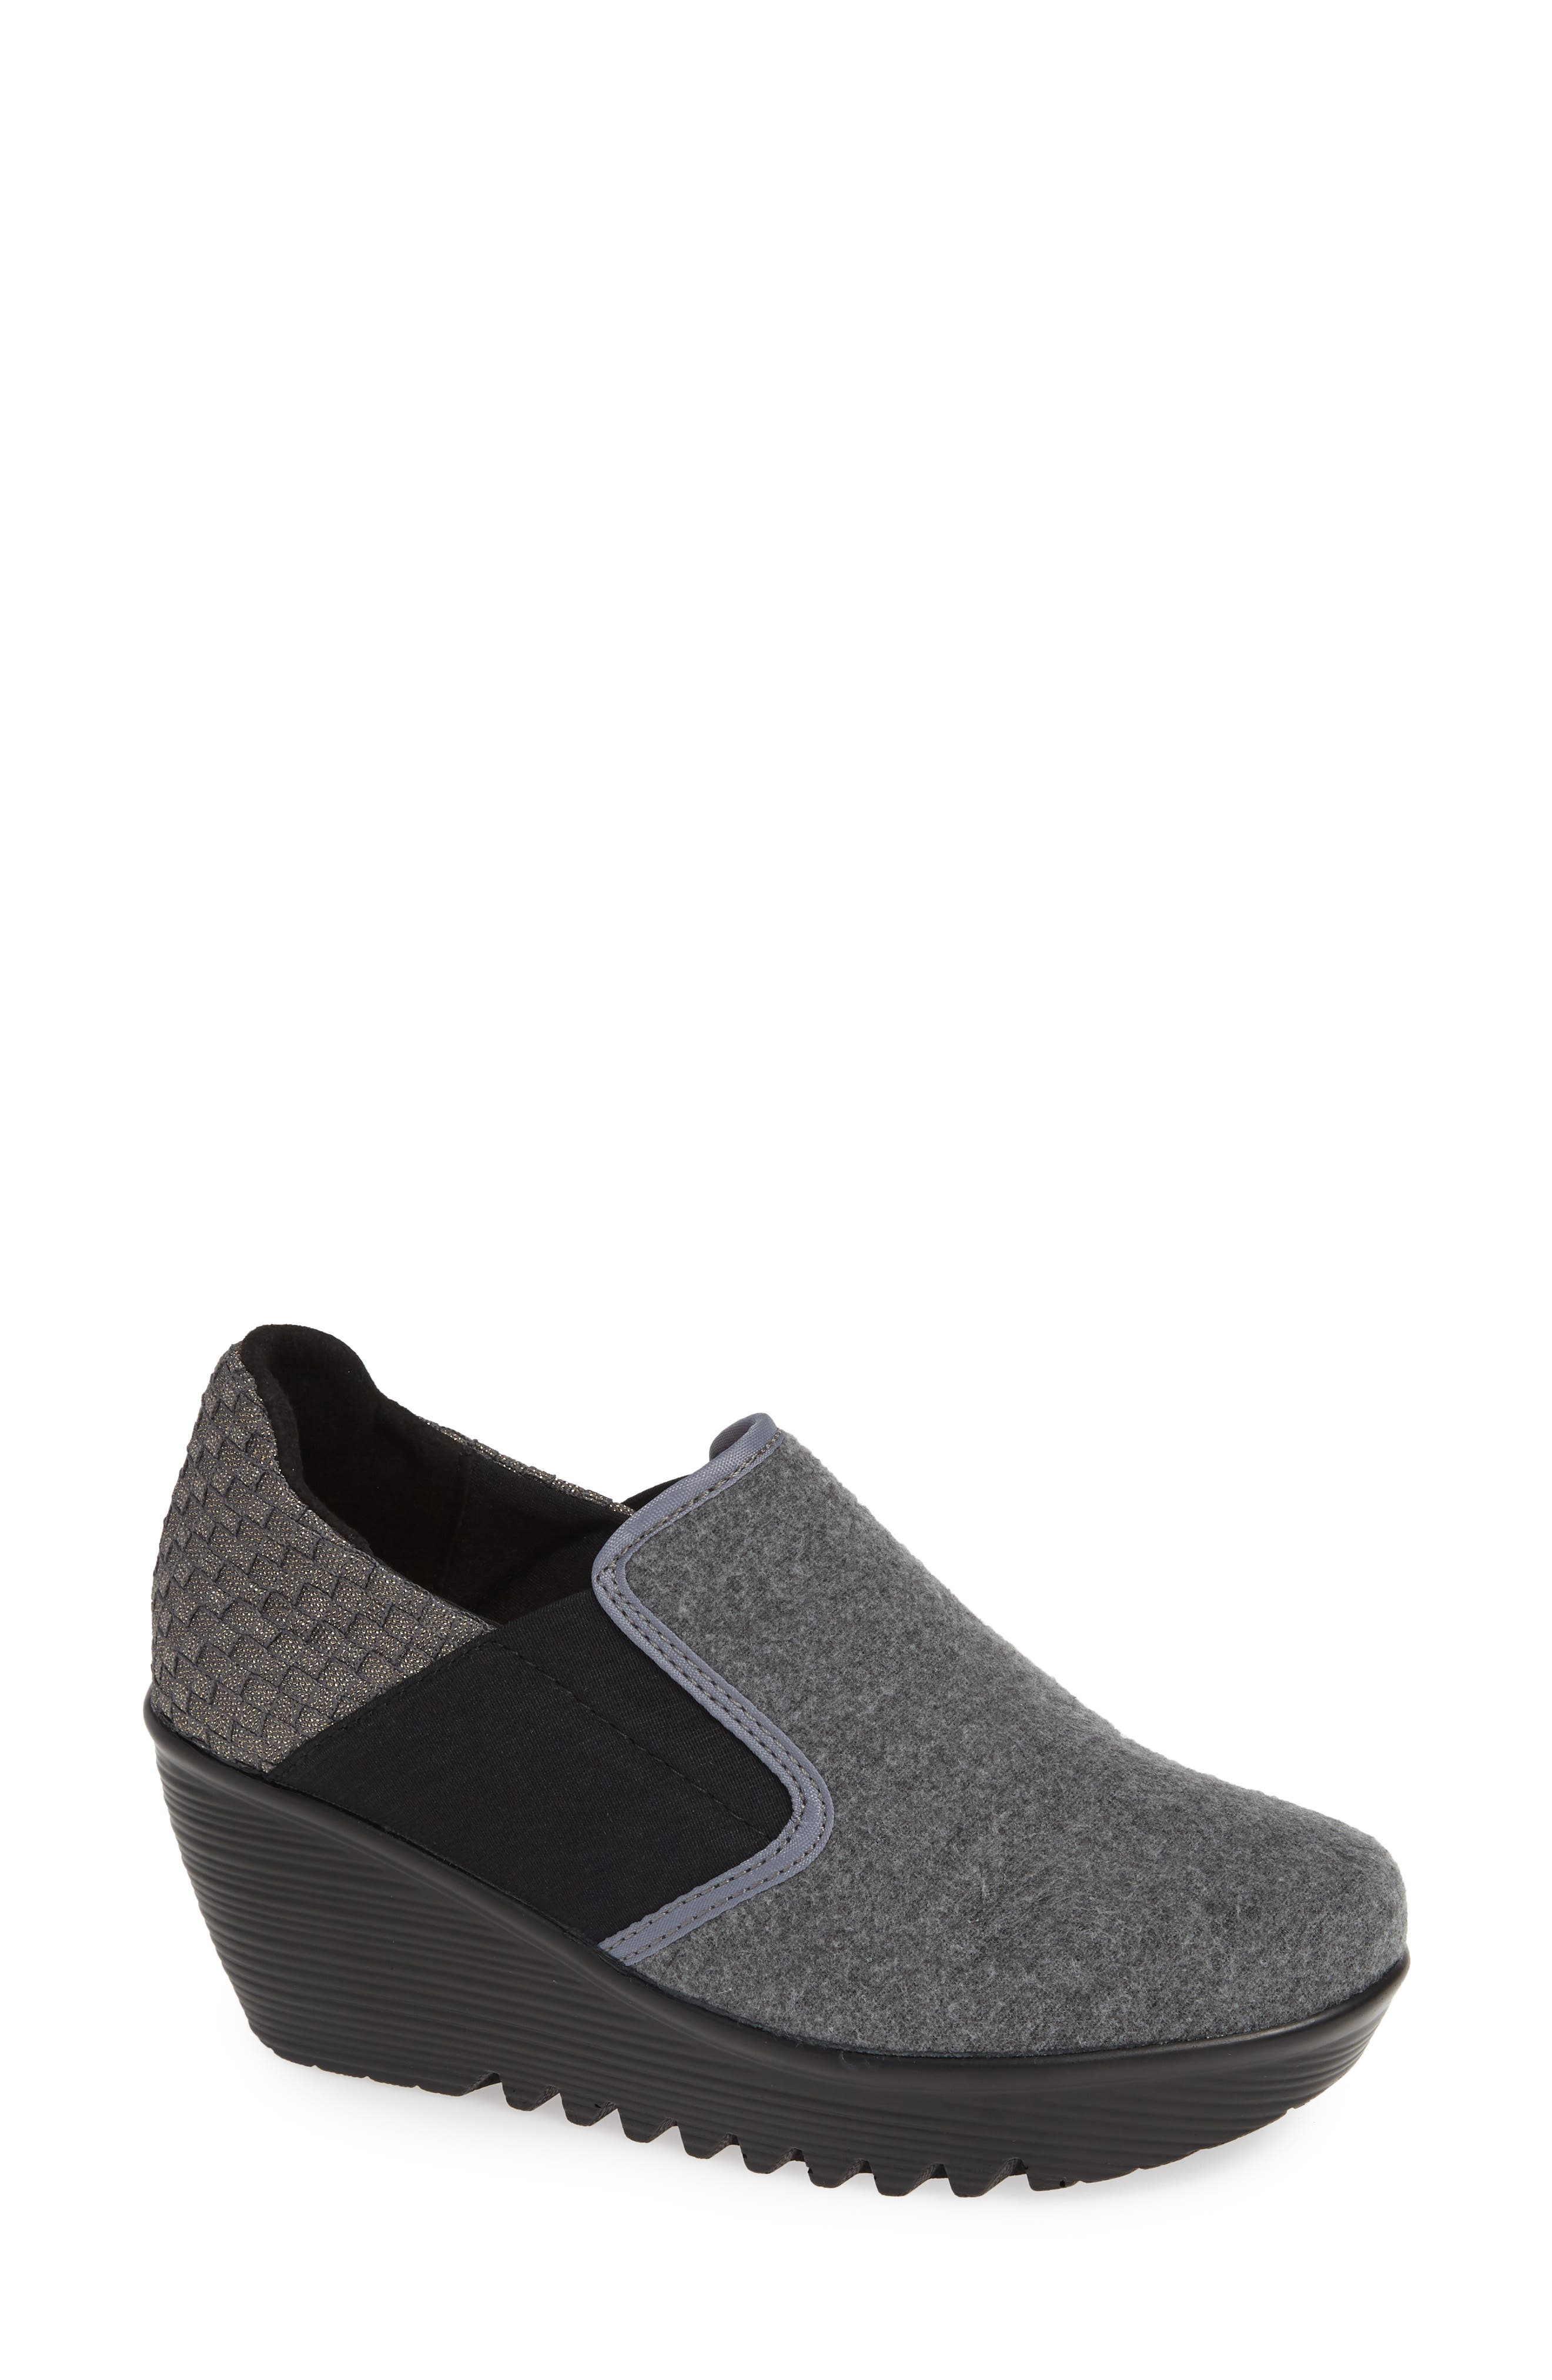 Bari Wedge,                         Main,                         color, GREY SHIMMER LEATHER